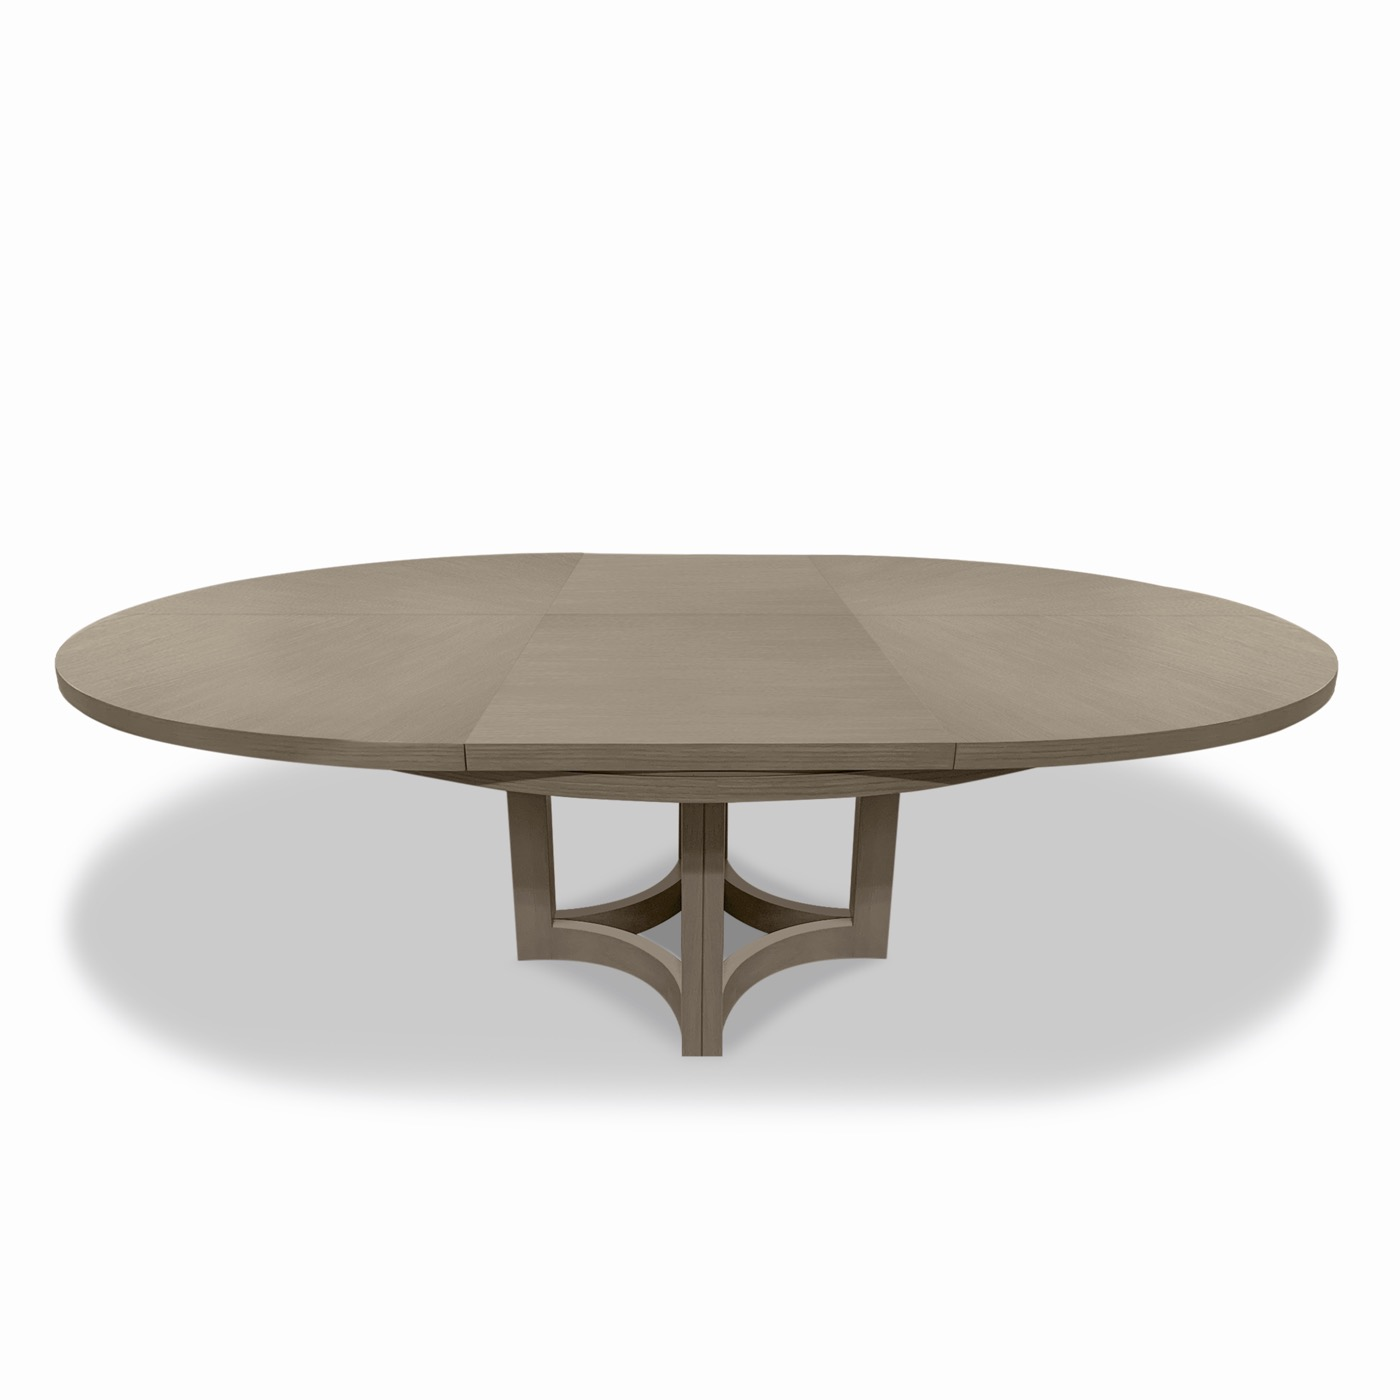 Ludlow Dining Table w/Leaf